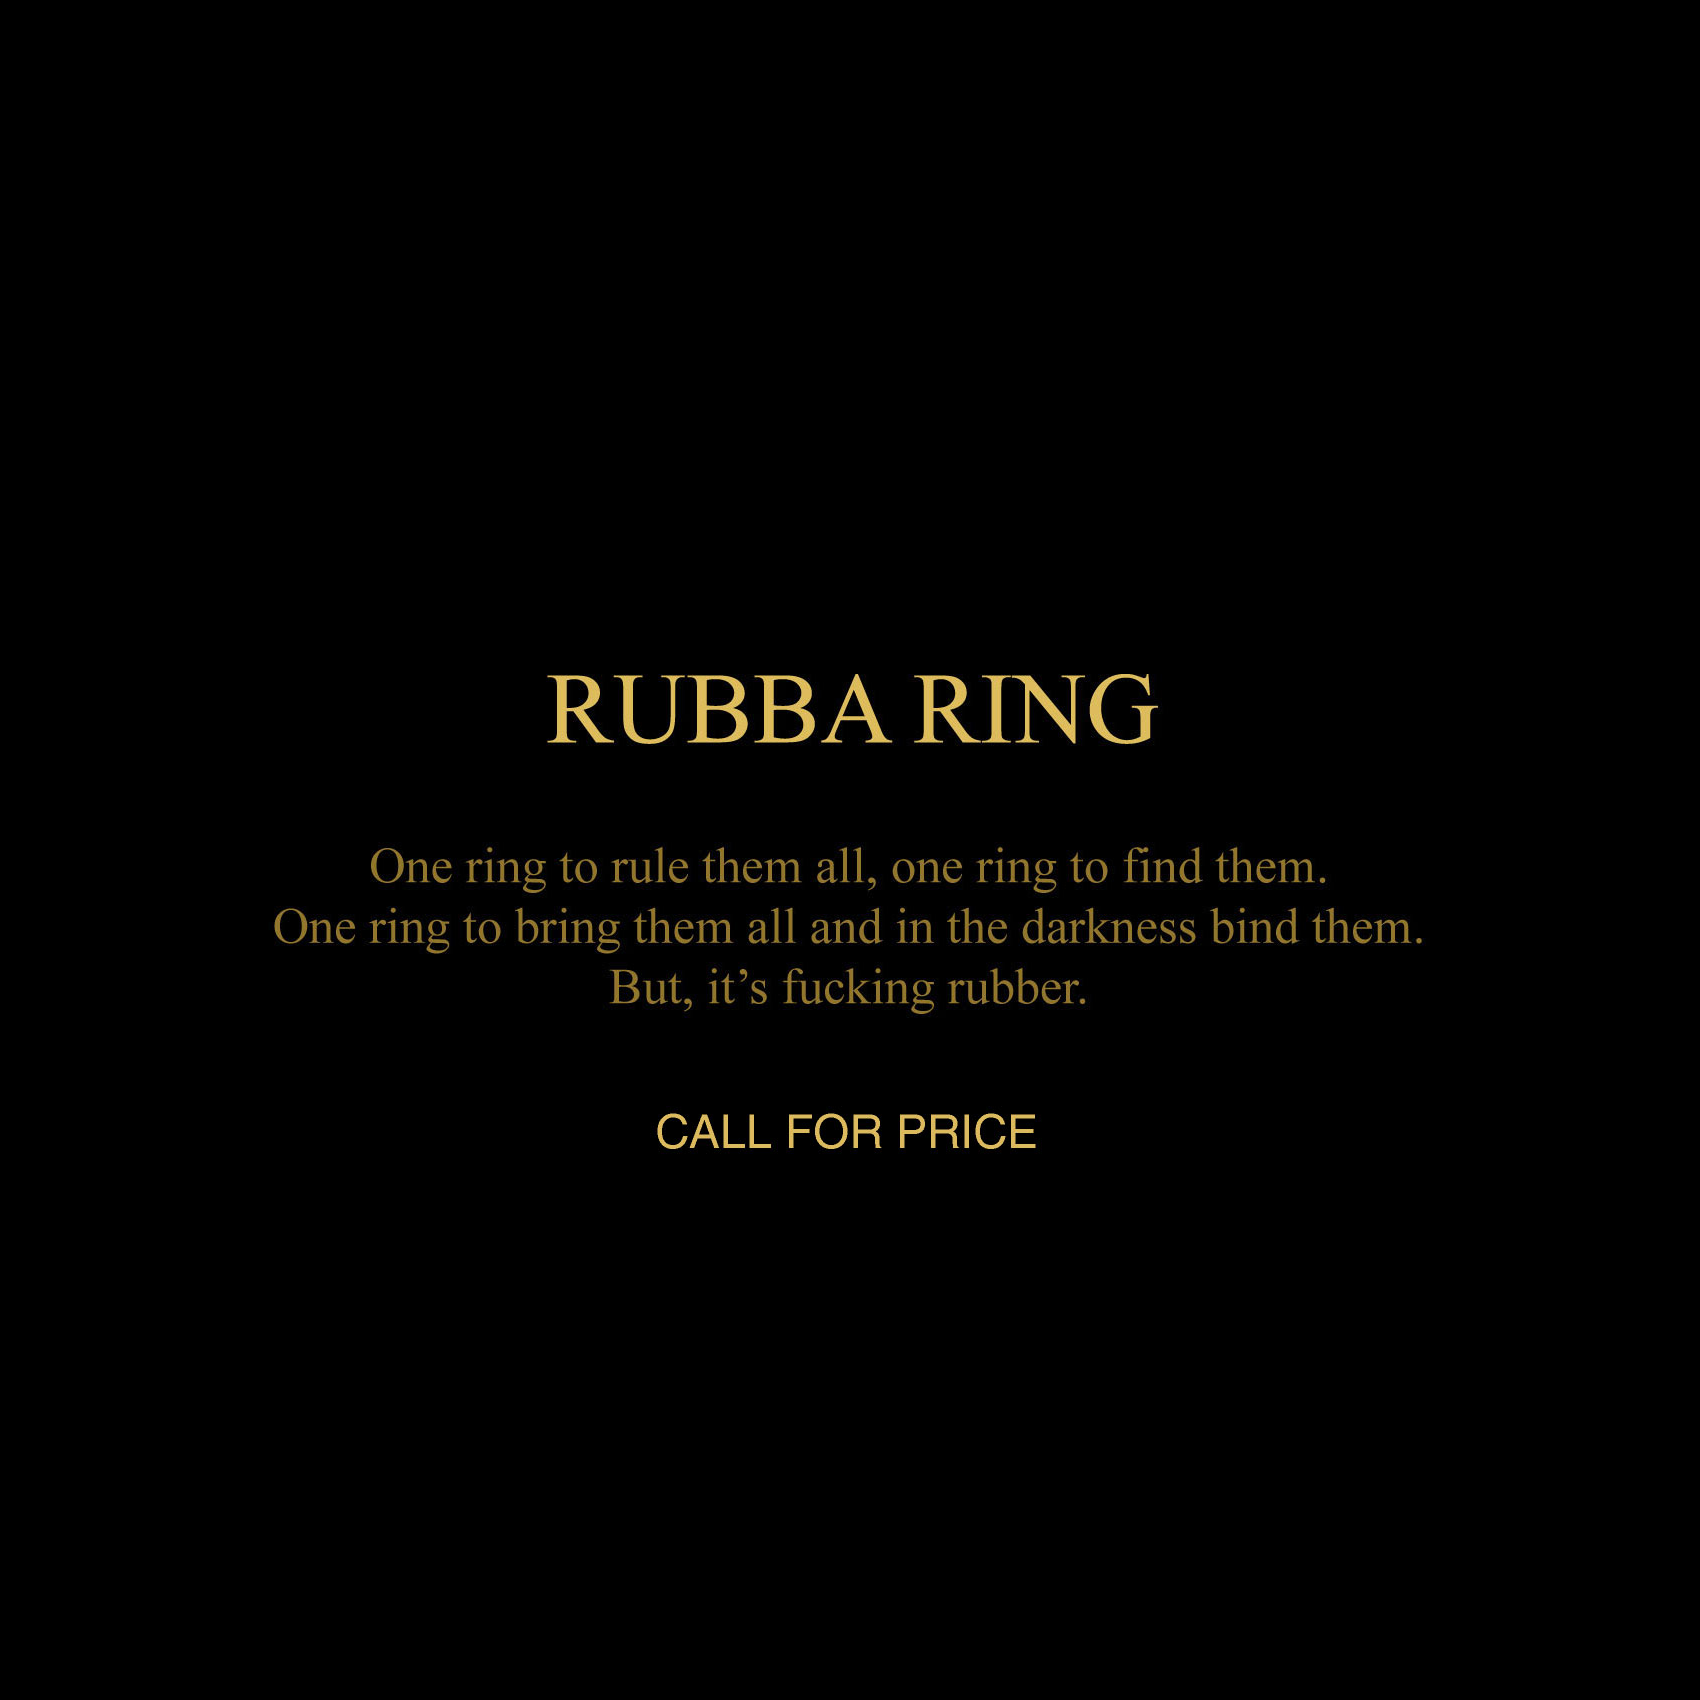 RUBBARING.png